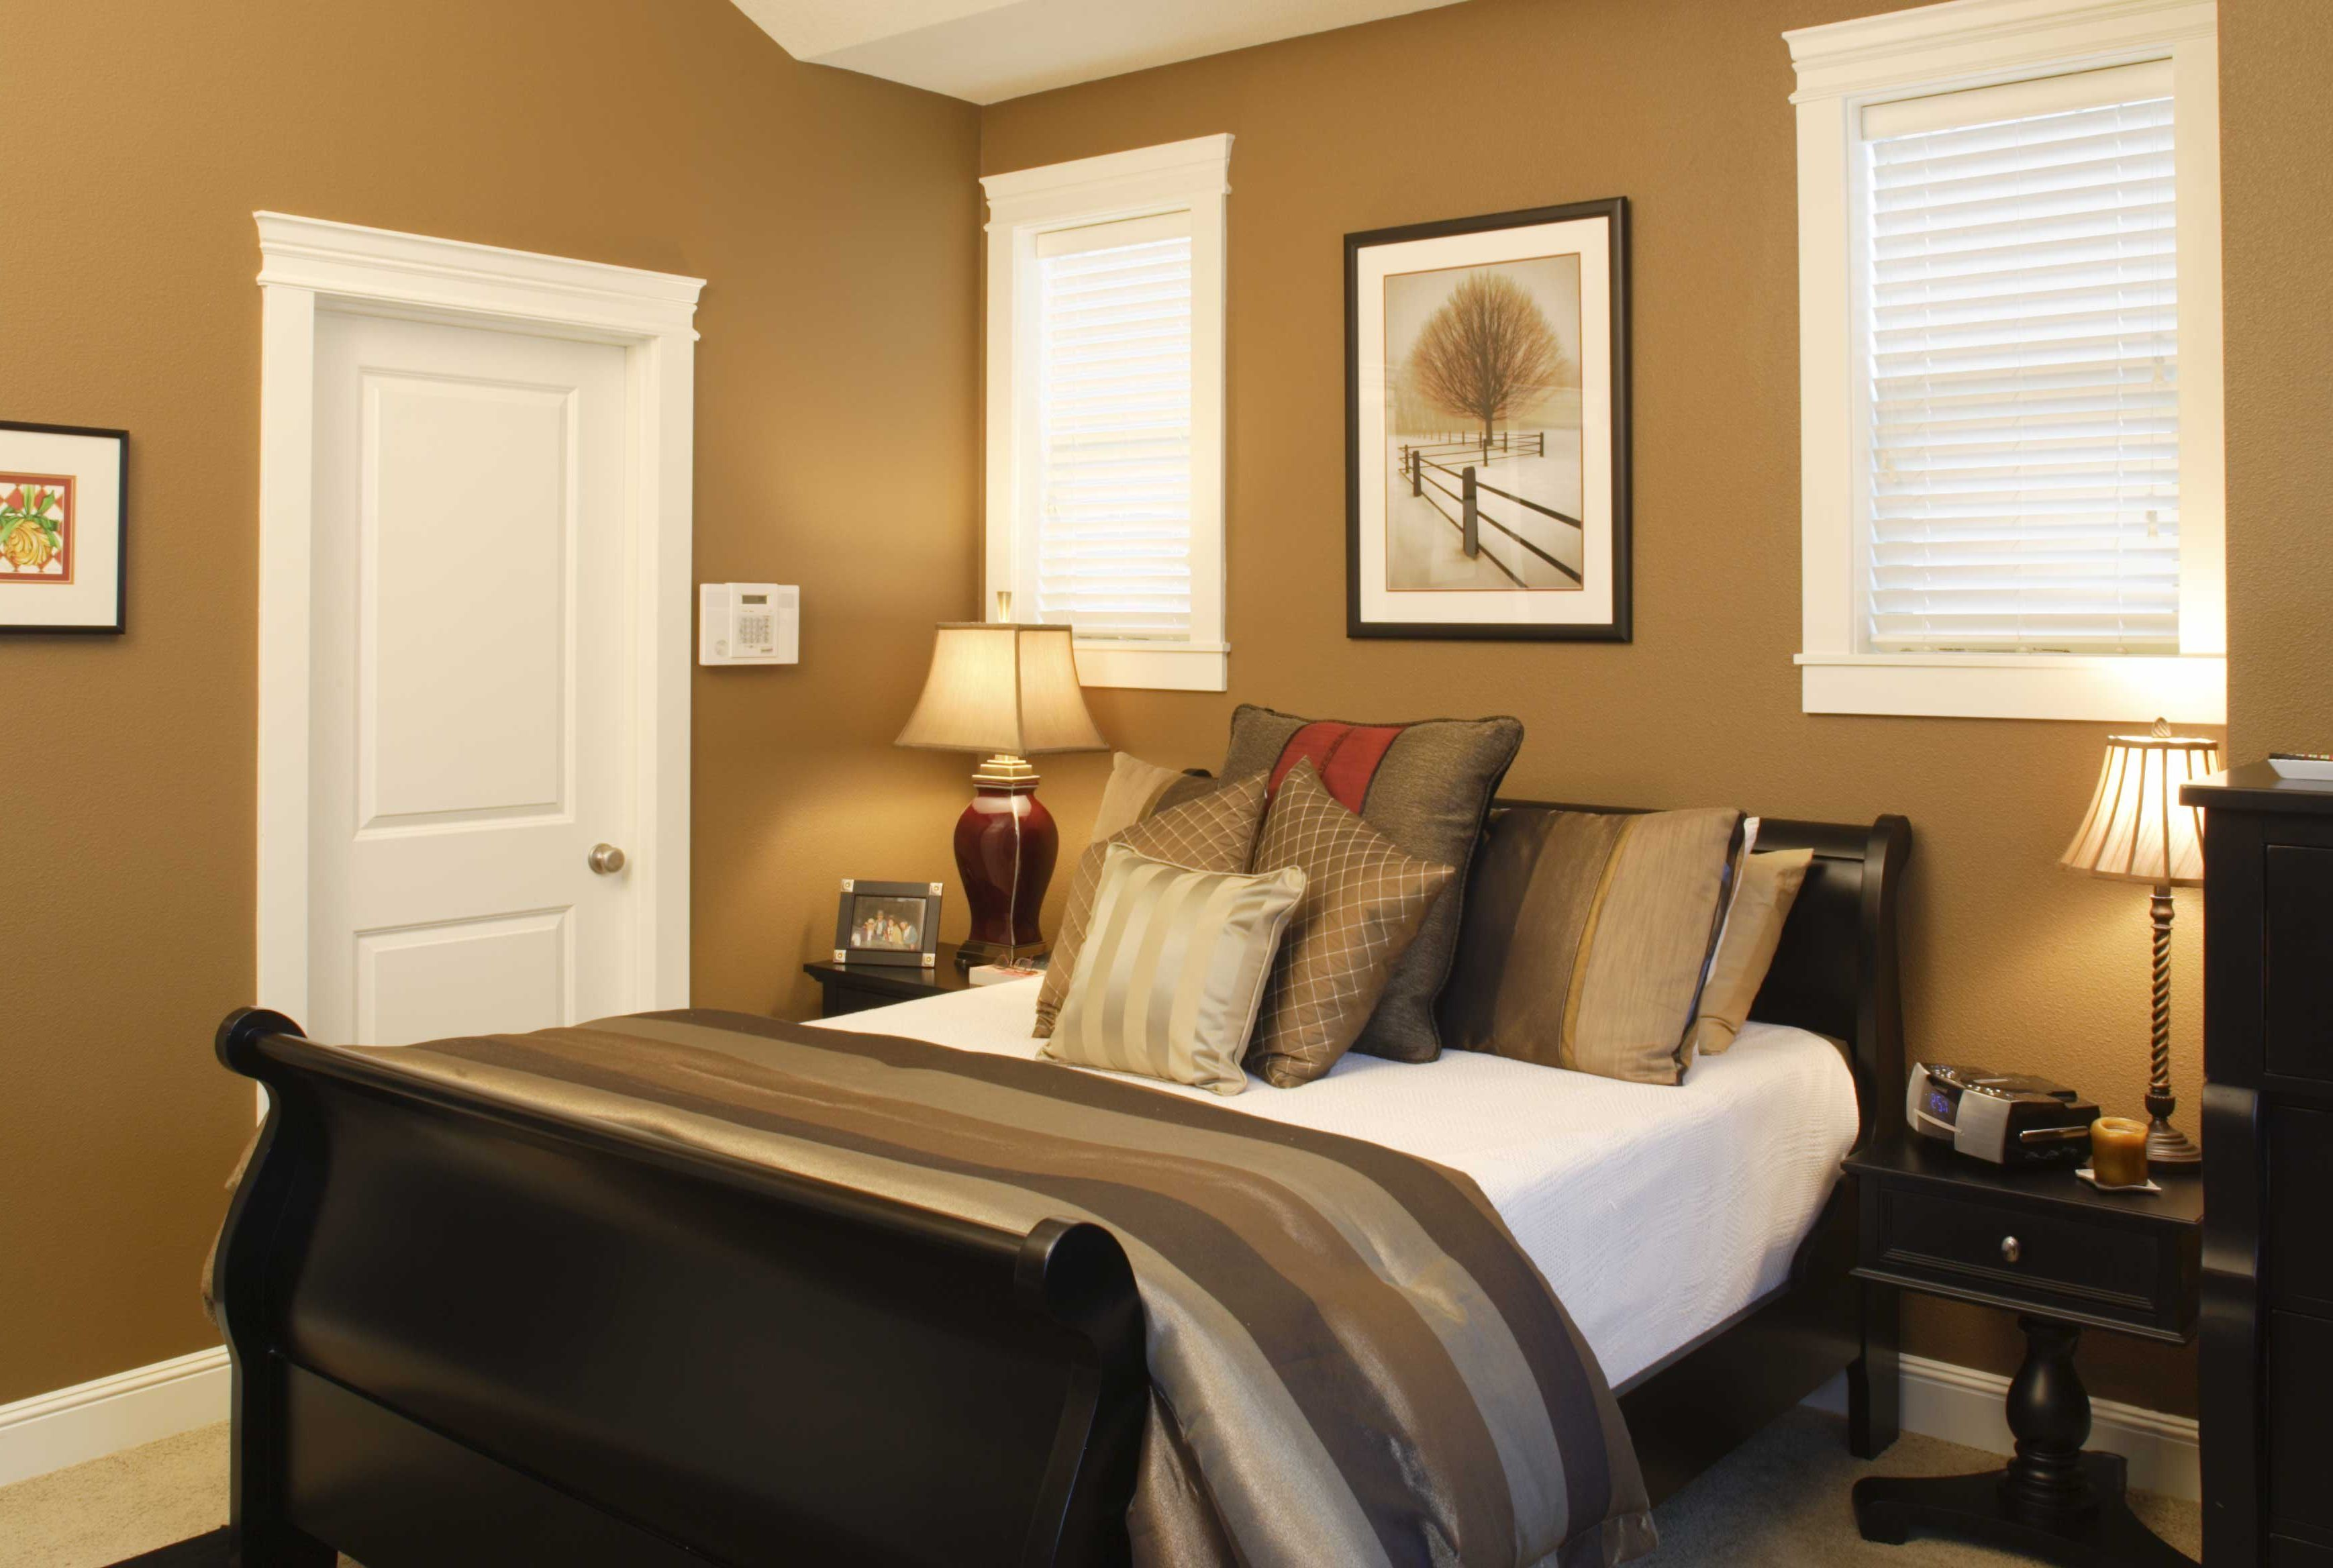 Bedroom Paint Colors Wonderful Nice Earth Tone In For Bedrooms